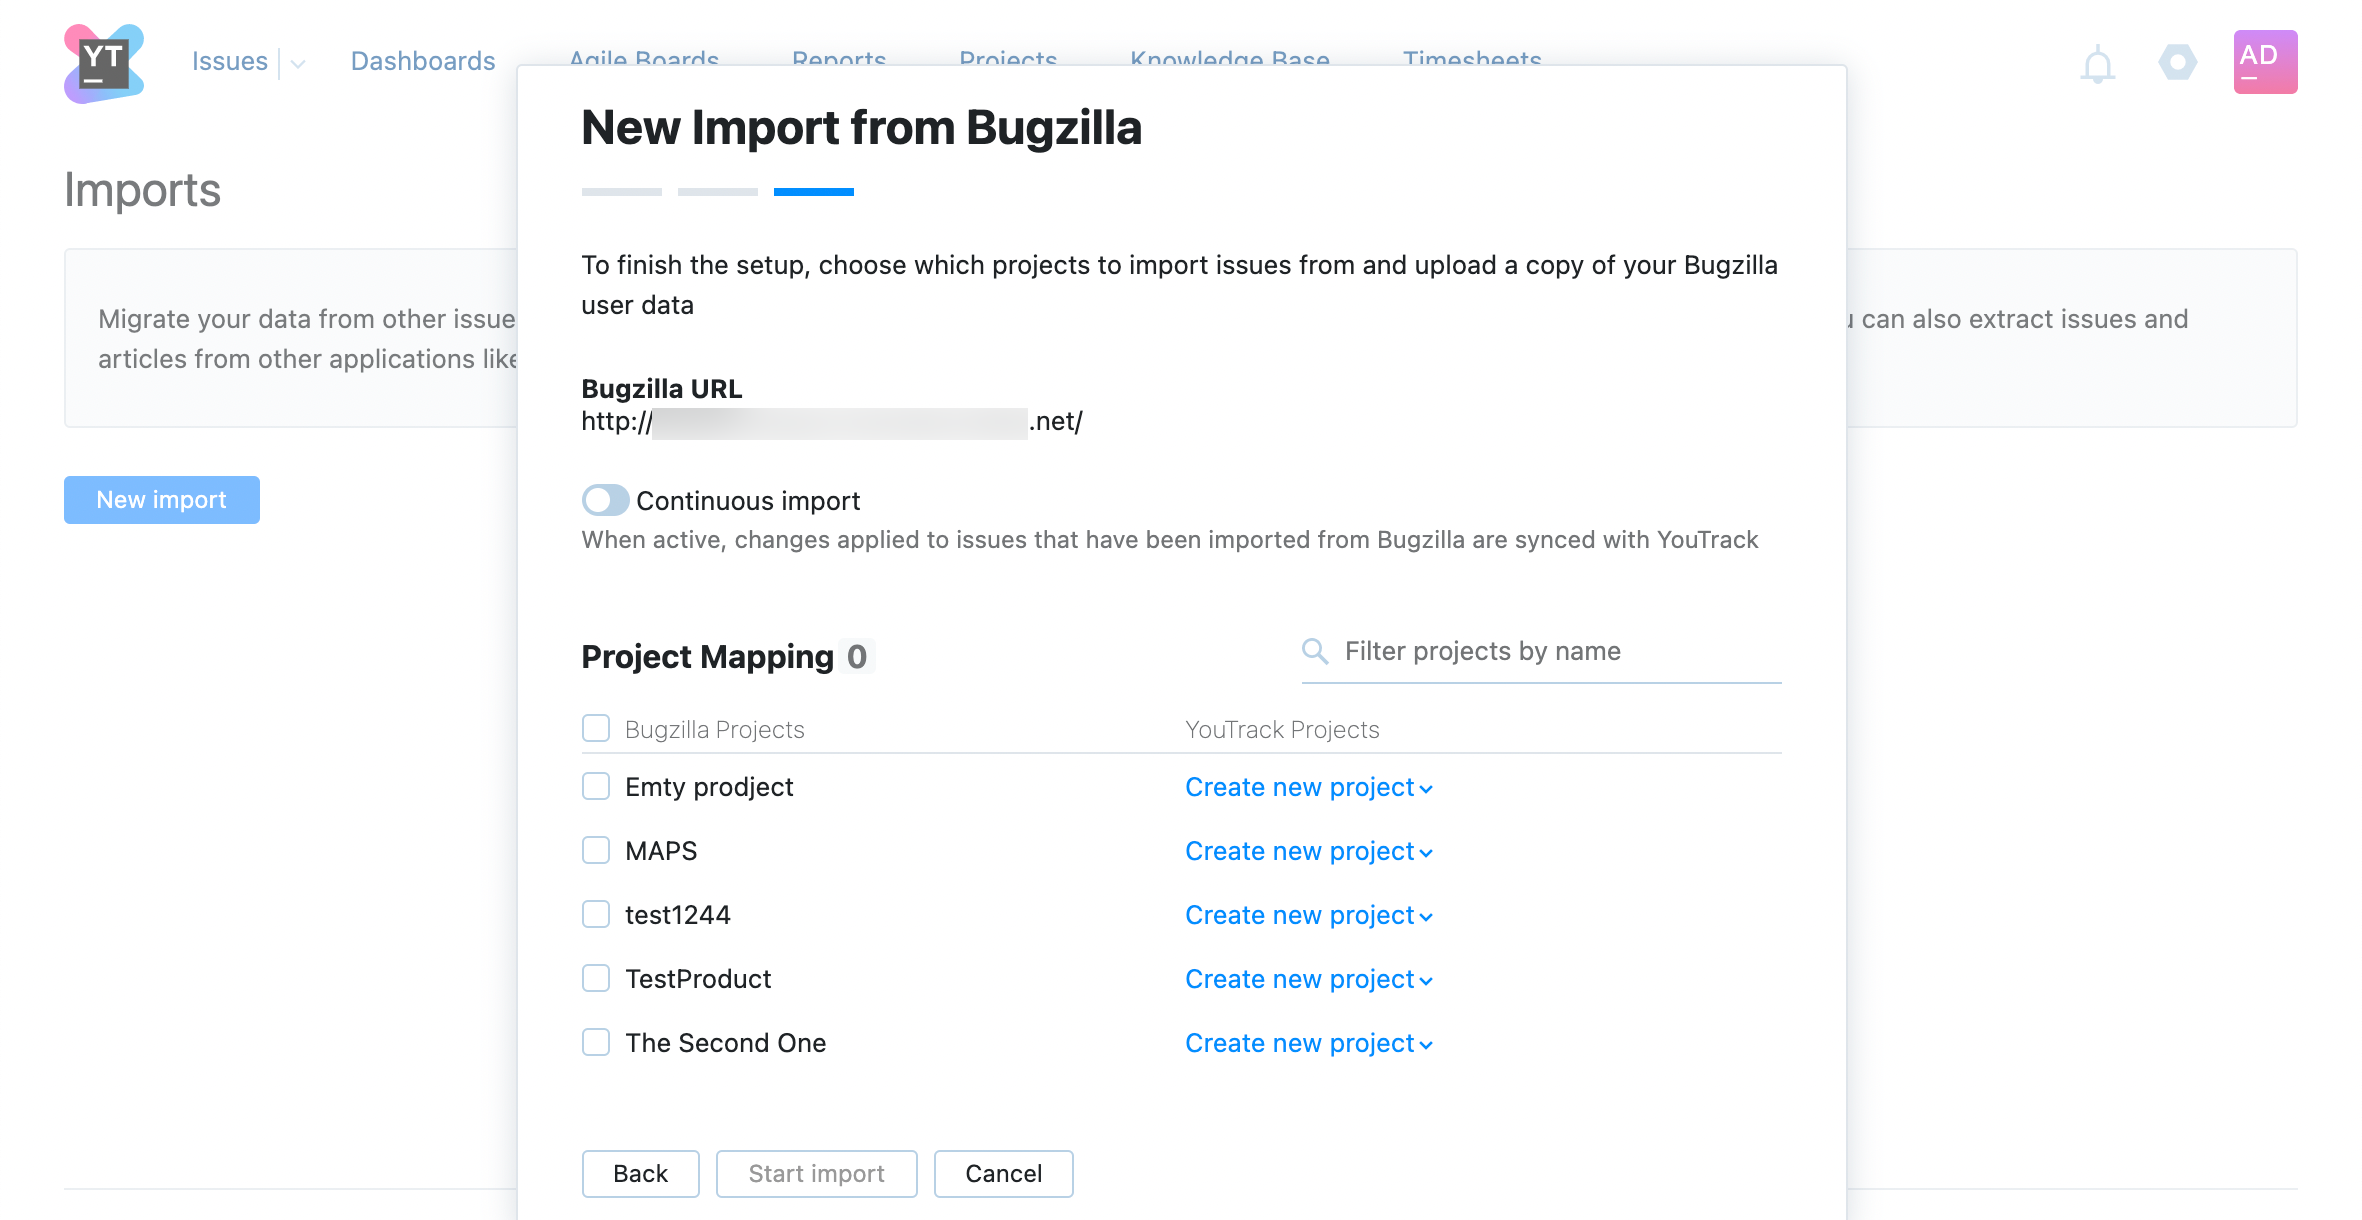 Select projects to import